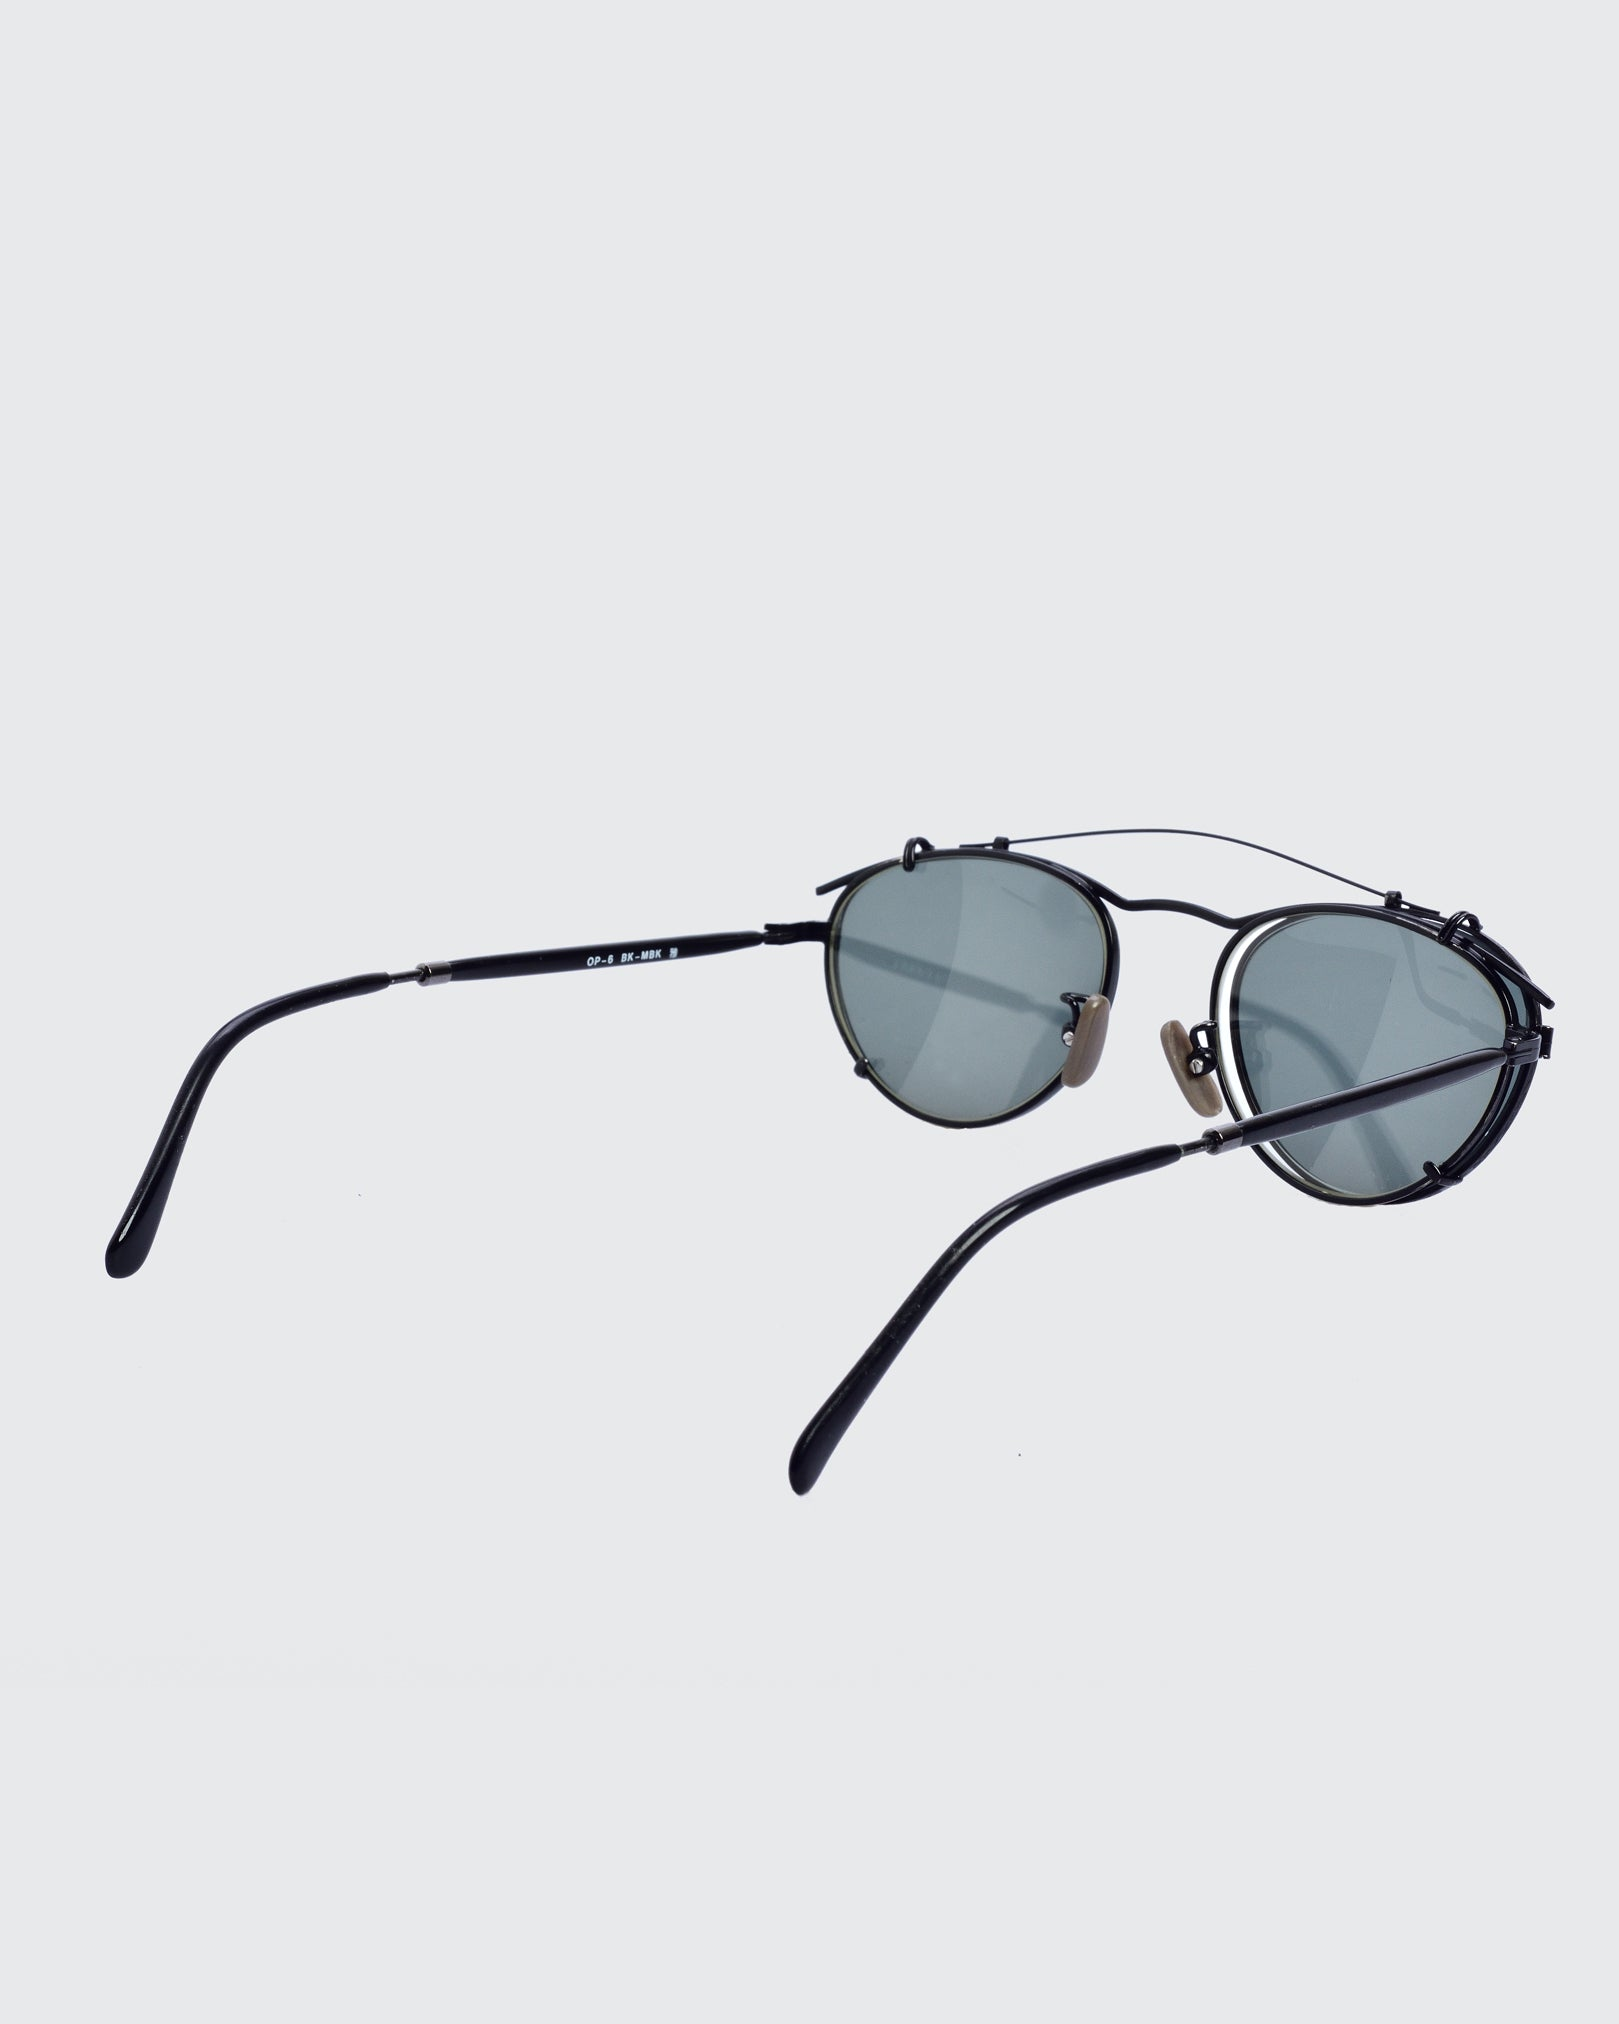 Oliver Peoples Black Rounded Sunglasses